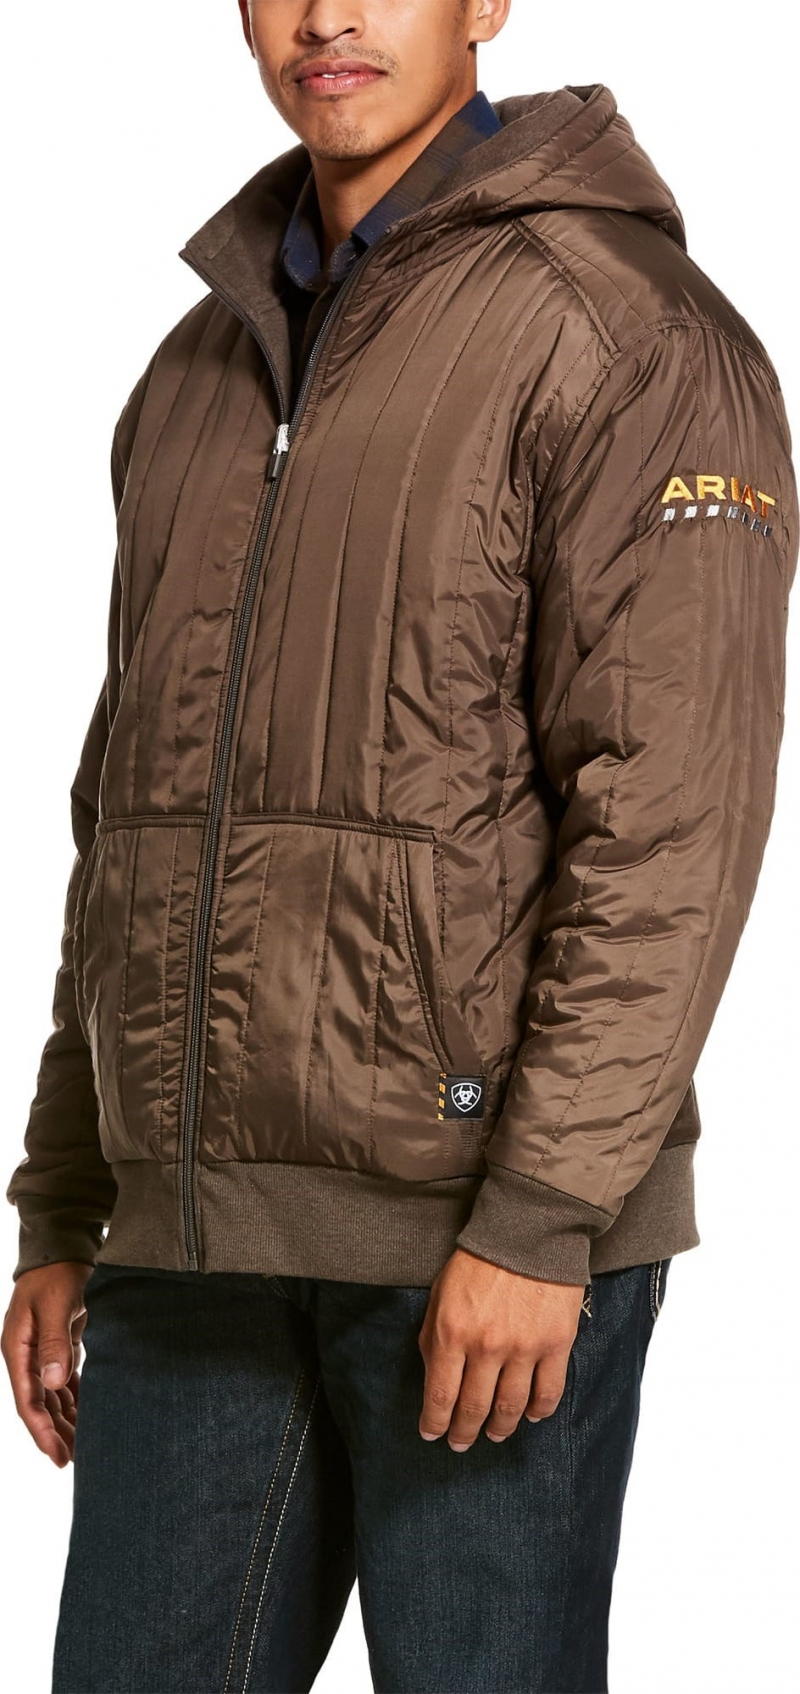 Ariat Rebar All-Weather Full Zip Hooded Sweatshirt -Banyan Bark Heather